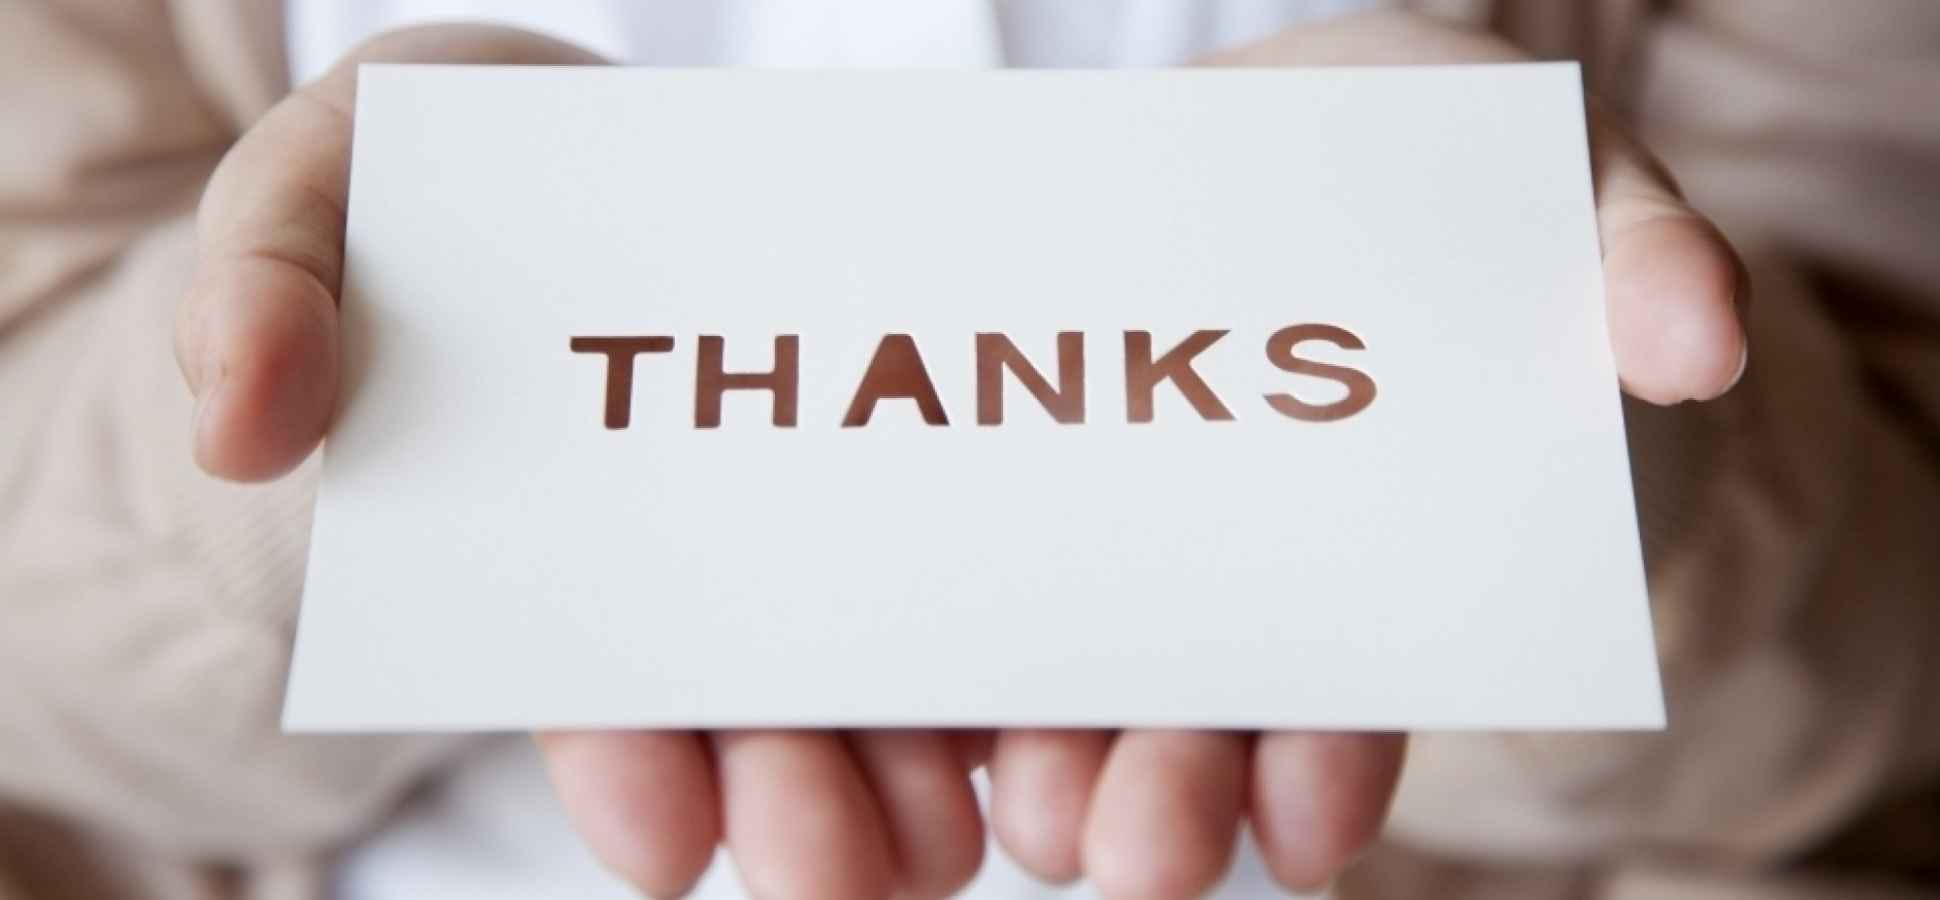 3 Ways For Us To Always Stay Grateful